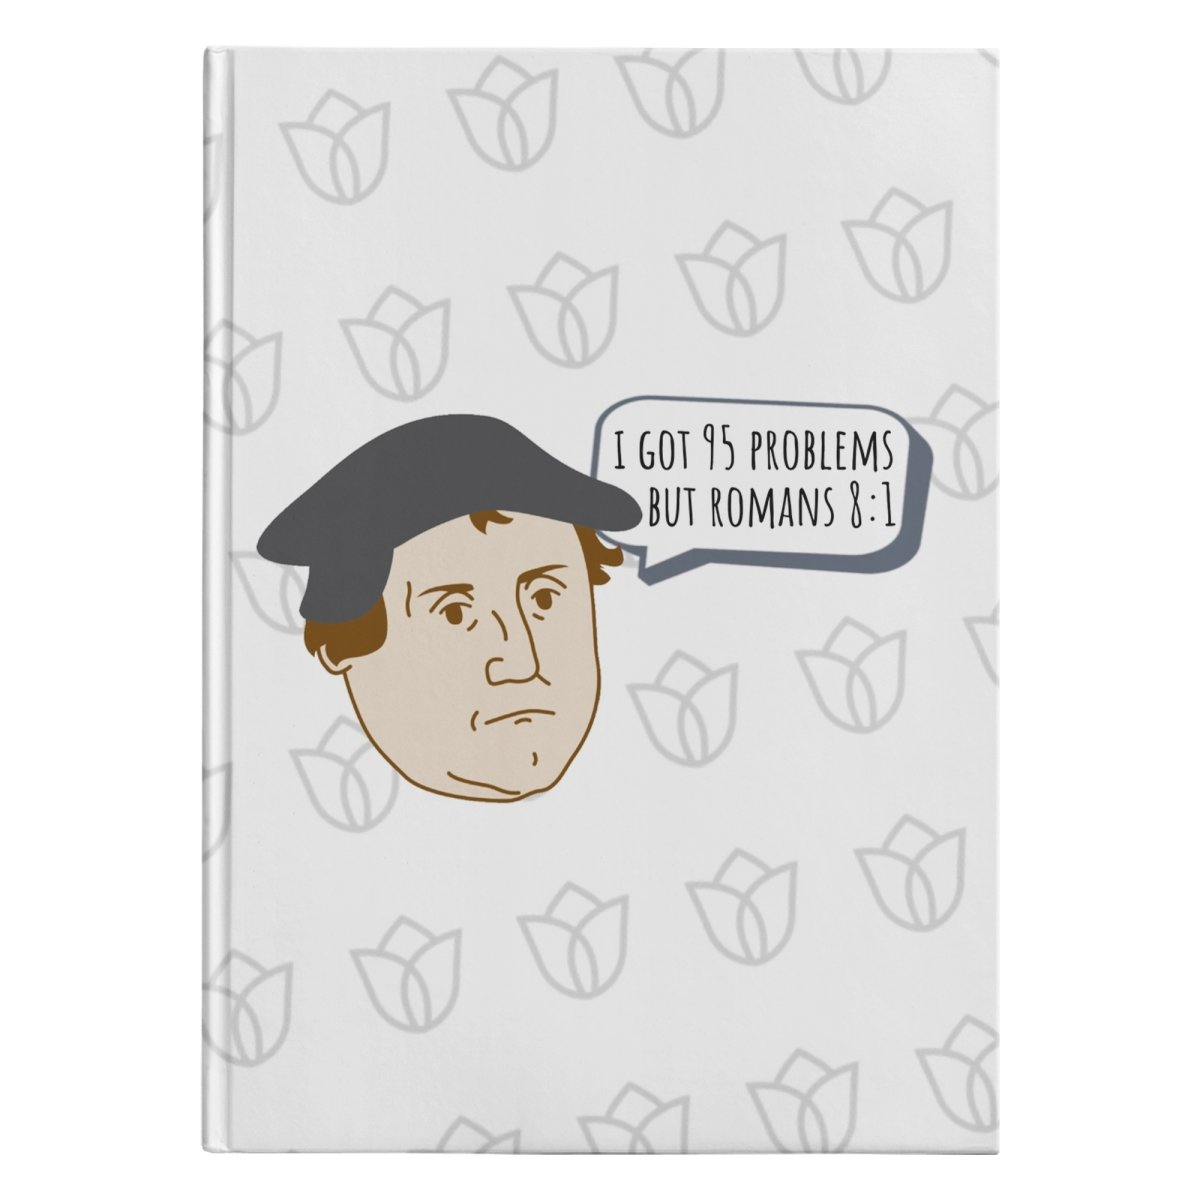 I Got 95 Problems (150 Page Hardcover Journal) - SDG Clothing